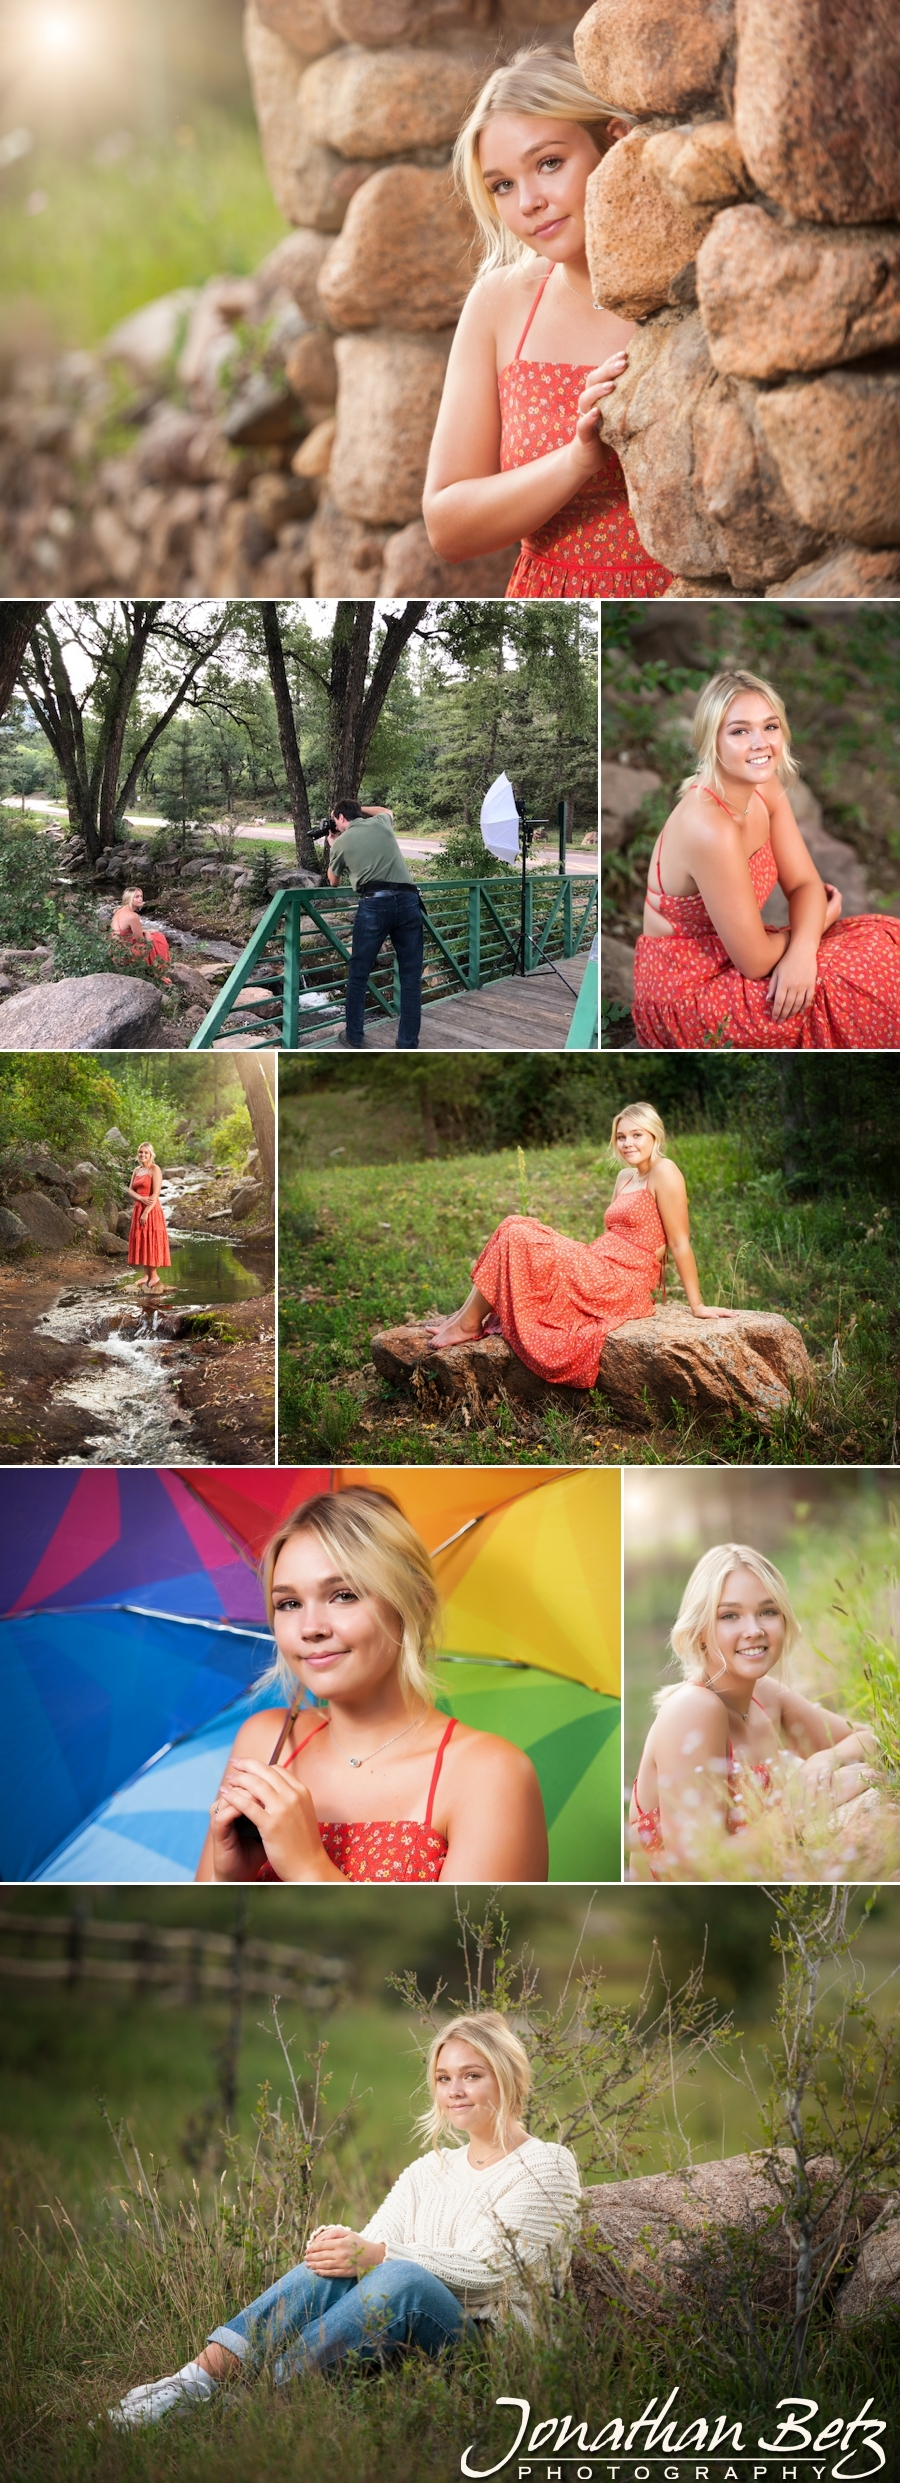 Discovery Canyon DCC High School Senior Portraits Jonathan Betz Photography Colorado Springs Photographer 1